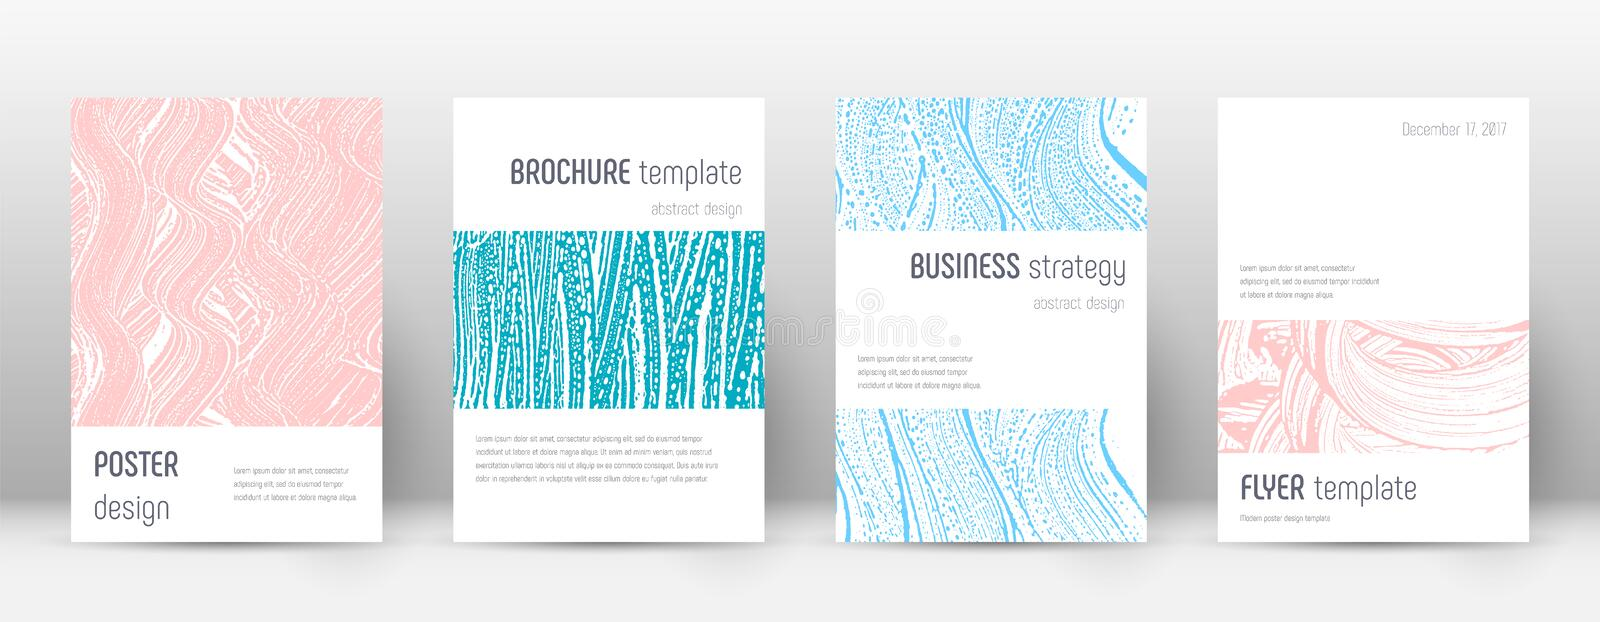 Cover page design template. Minimalistic brochure. Layout. Classy trendy abstract cover page. Pink and blue grunge texture background. Exquisite poster stock illustration